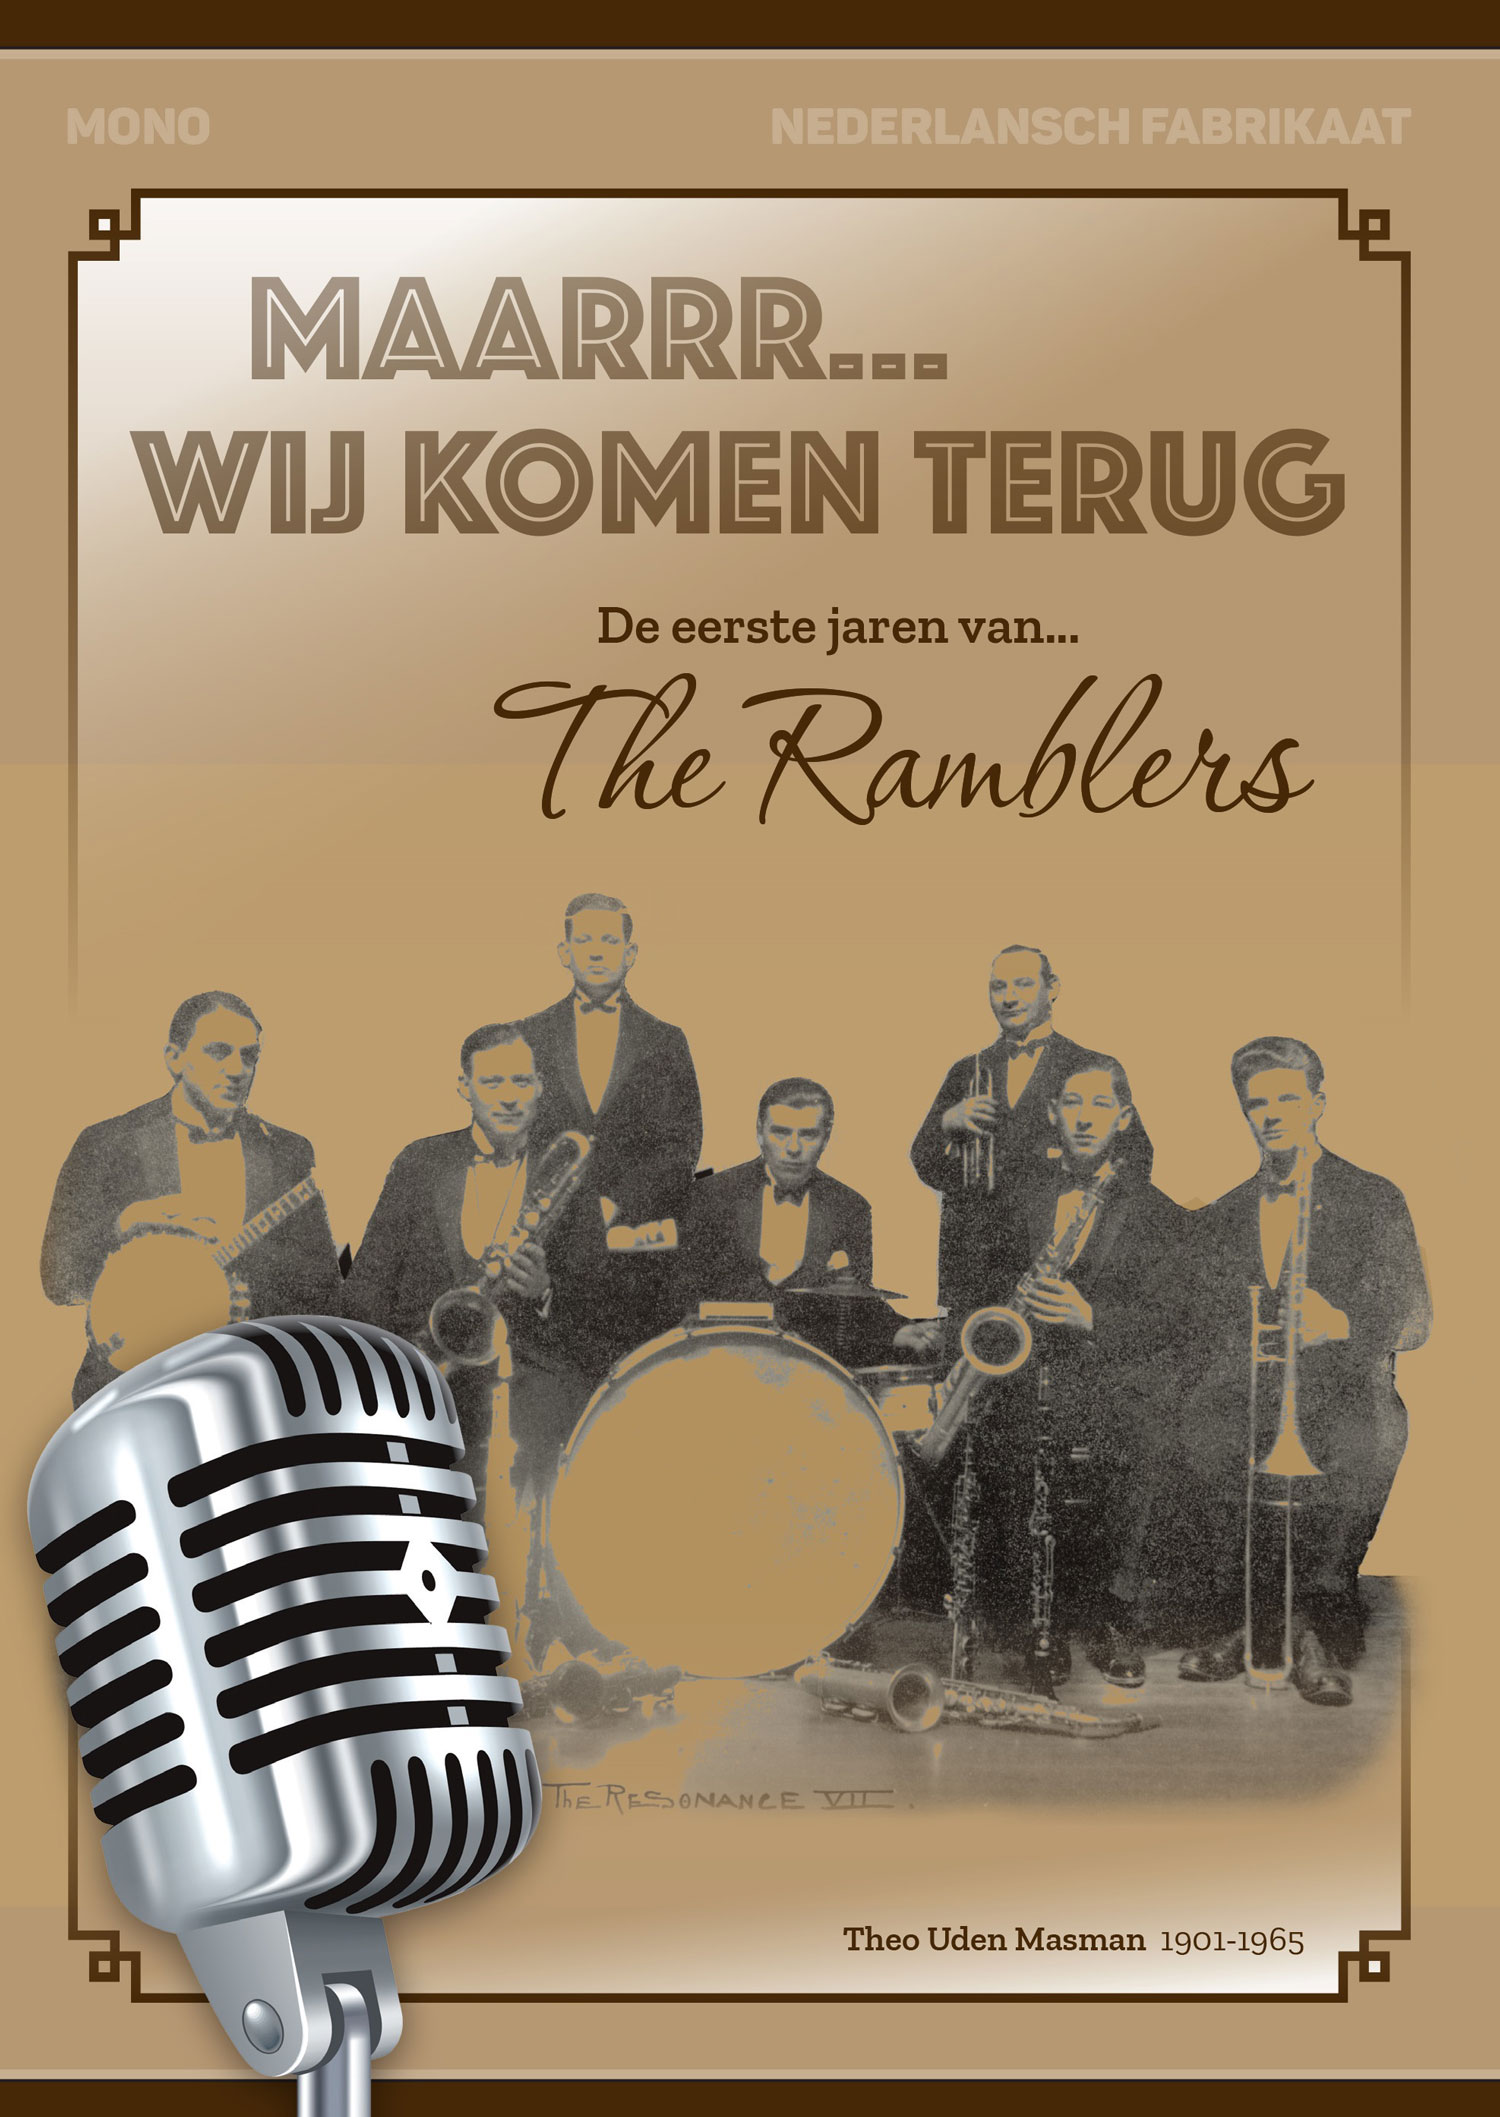 Boek over The Ramblers